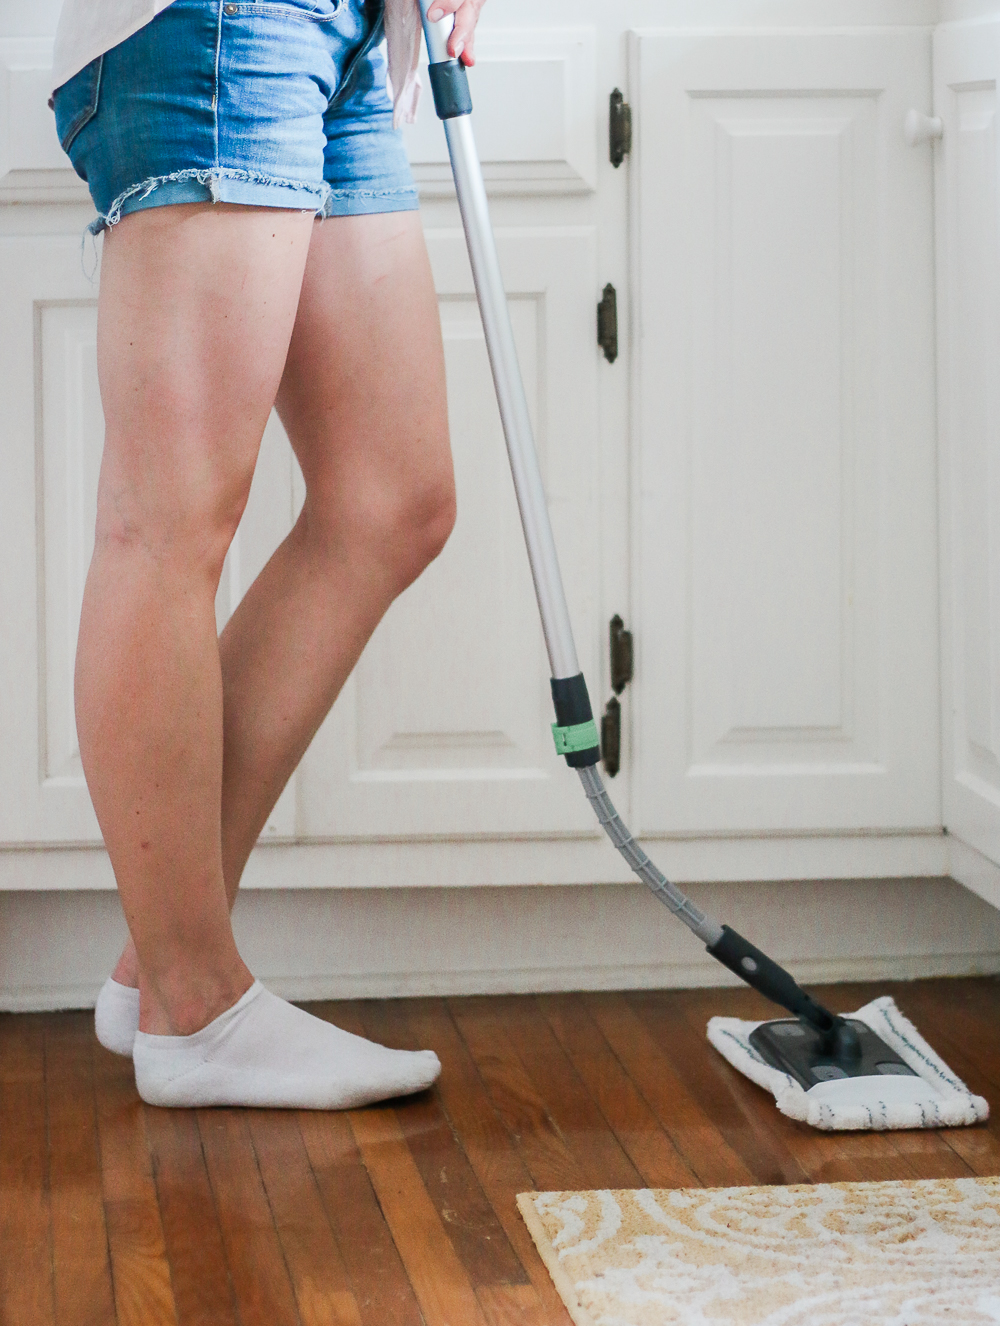 best way to clean hardwood floors with pets, best mop for dog hair on hardwood, STAINMASTER Sweep and Mop Kit review, Cleaning Hacks for Dog Moms: How to Tidy Your Home in 15 Minutes (or Less) by southern lifestyle blogger Stephanie Ziajka from Diary of a Debutante